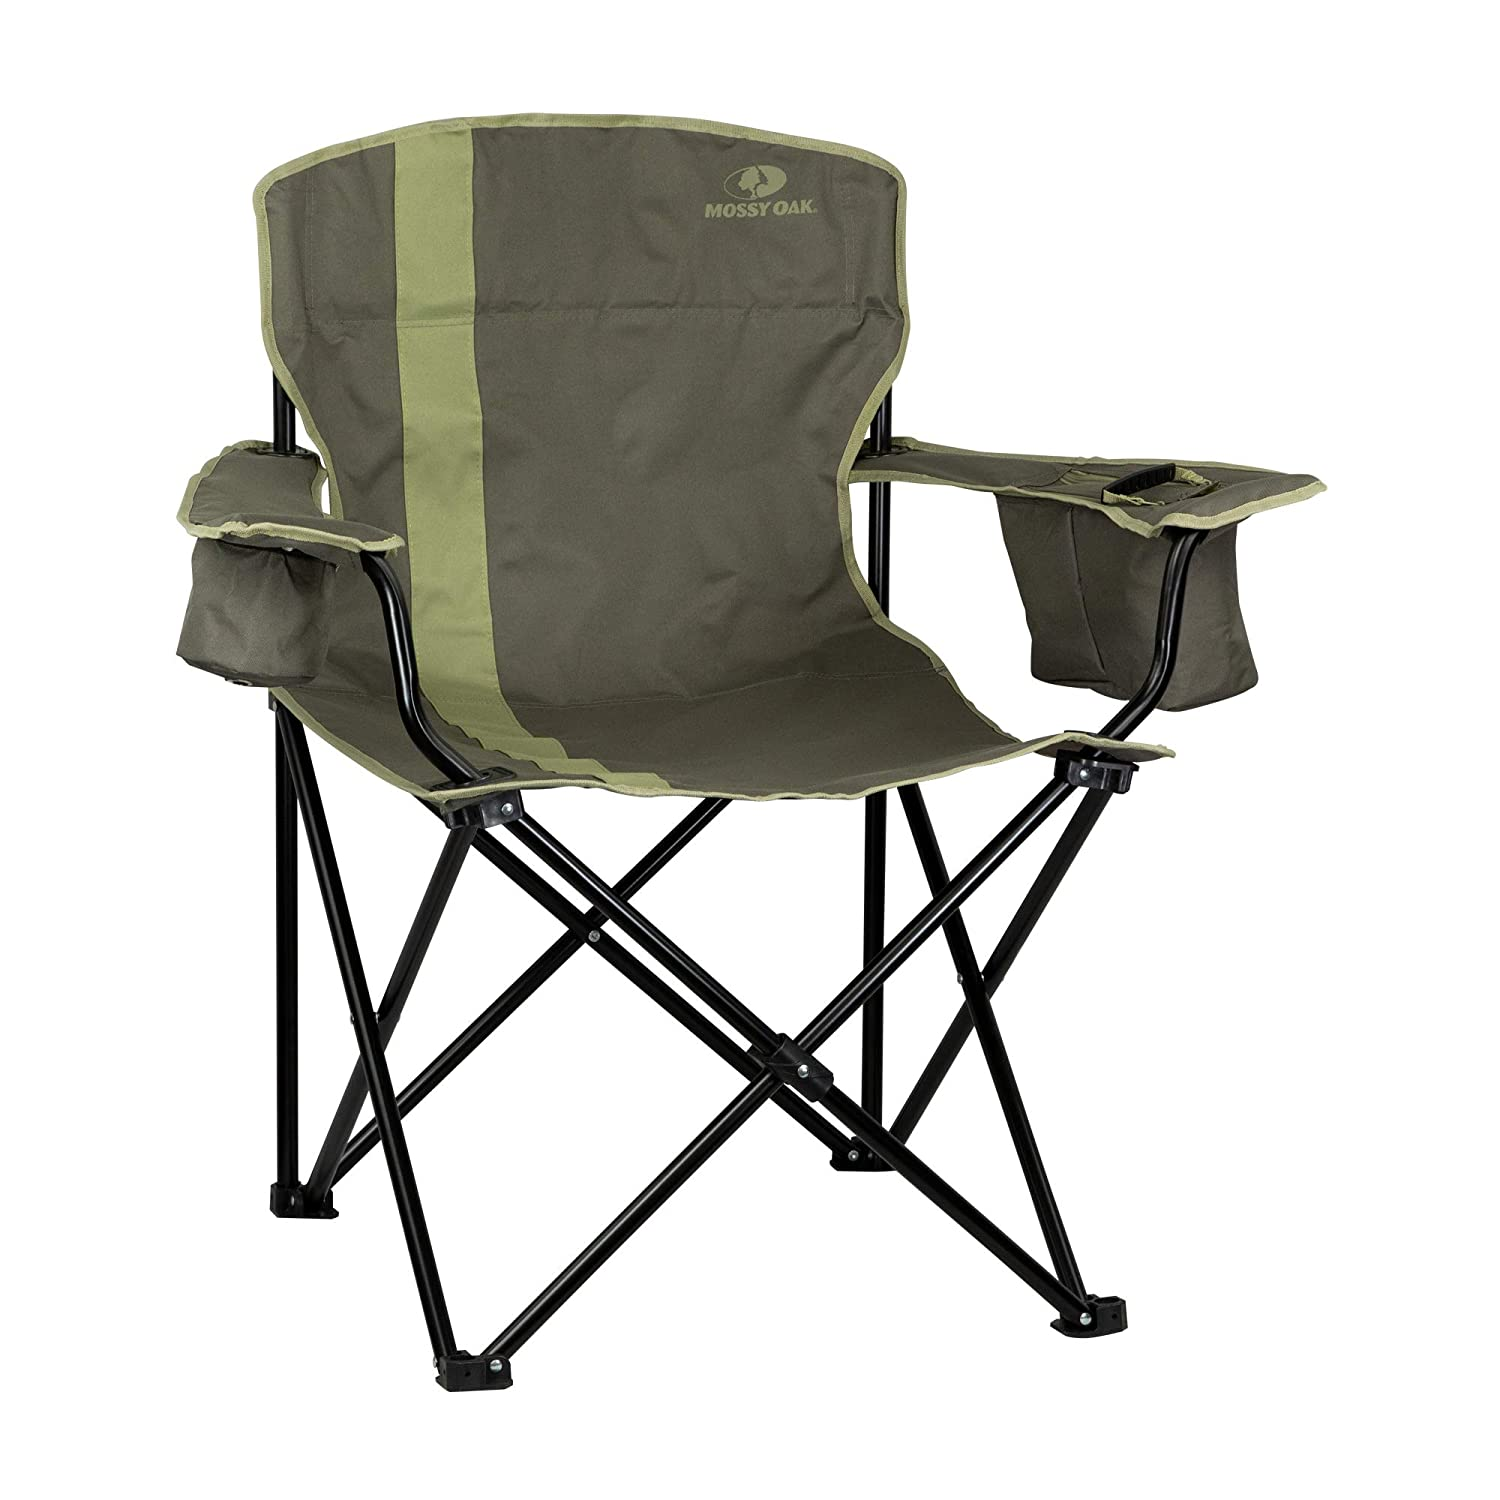 Folding Lawn Chairs Heavy Duty.Amazon Com Mossy Oak Heavy Duty Folding Camping Chairs